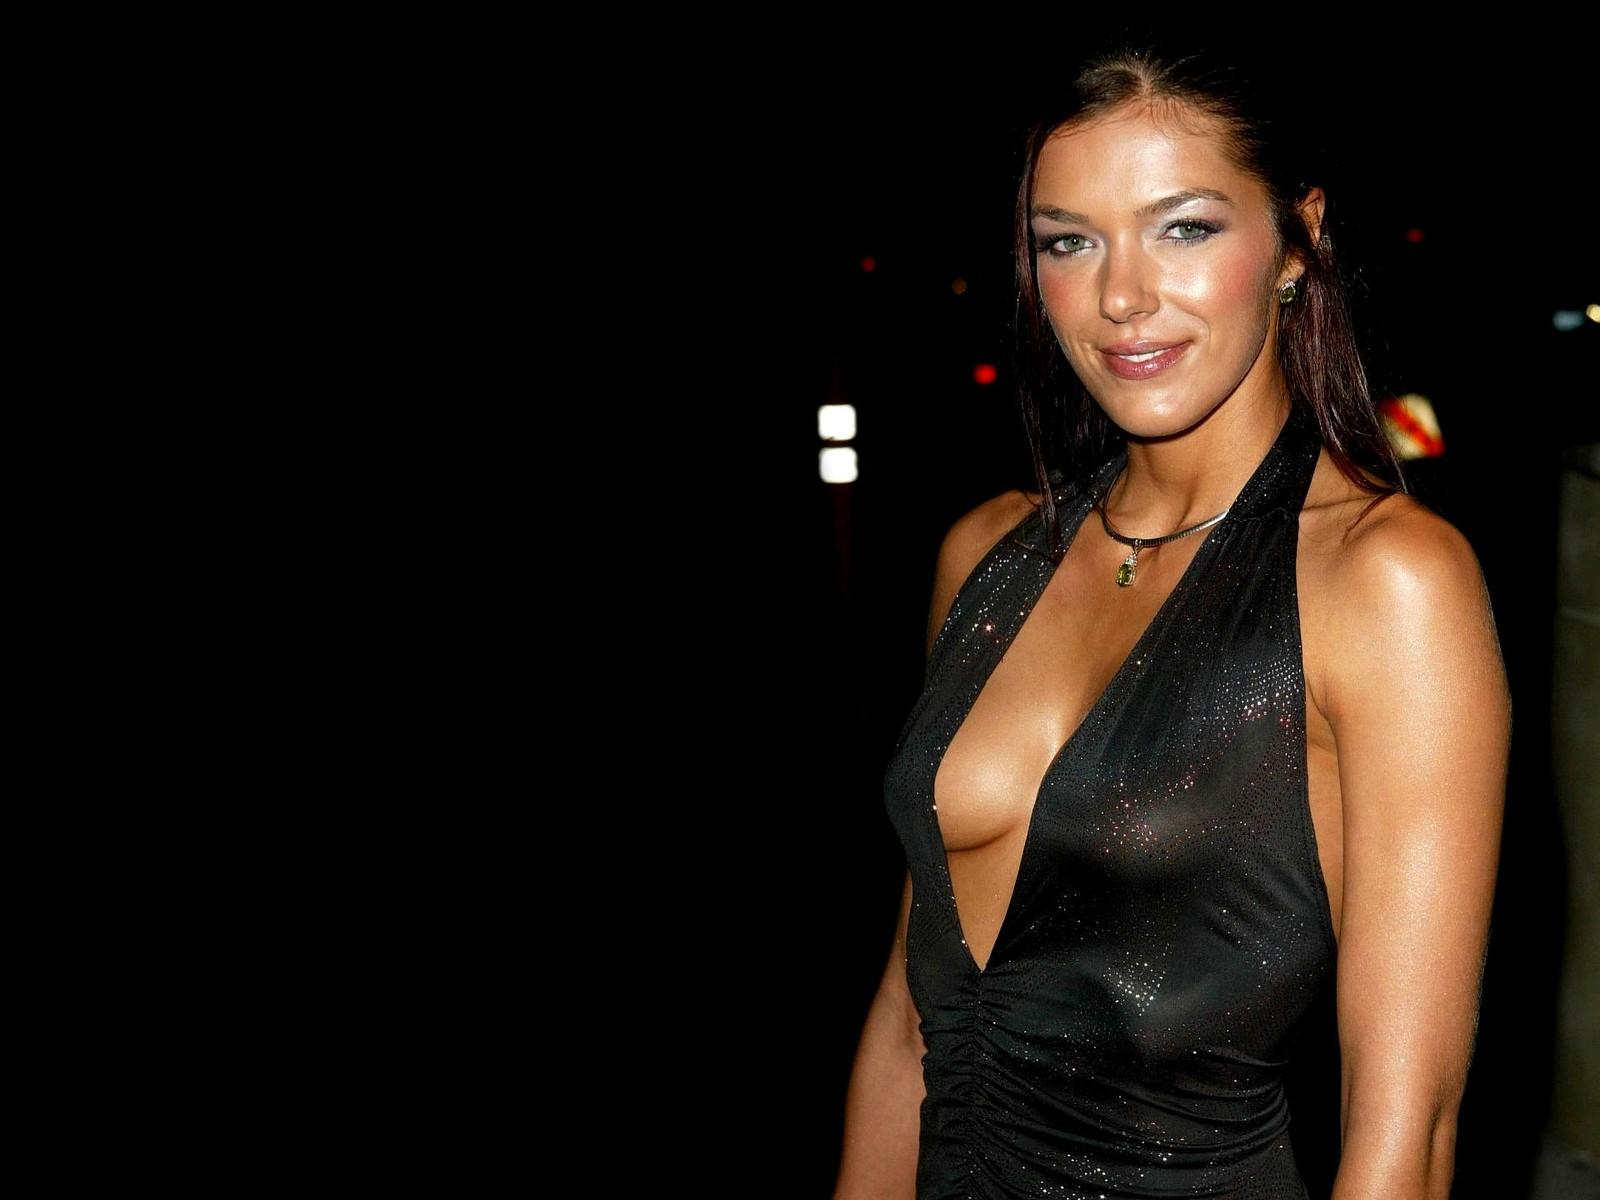 Обои Adrianne Curry 1600x1200